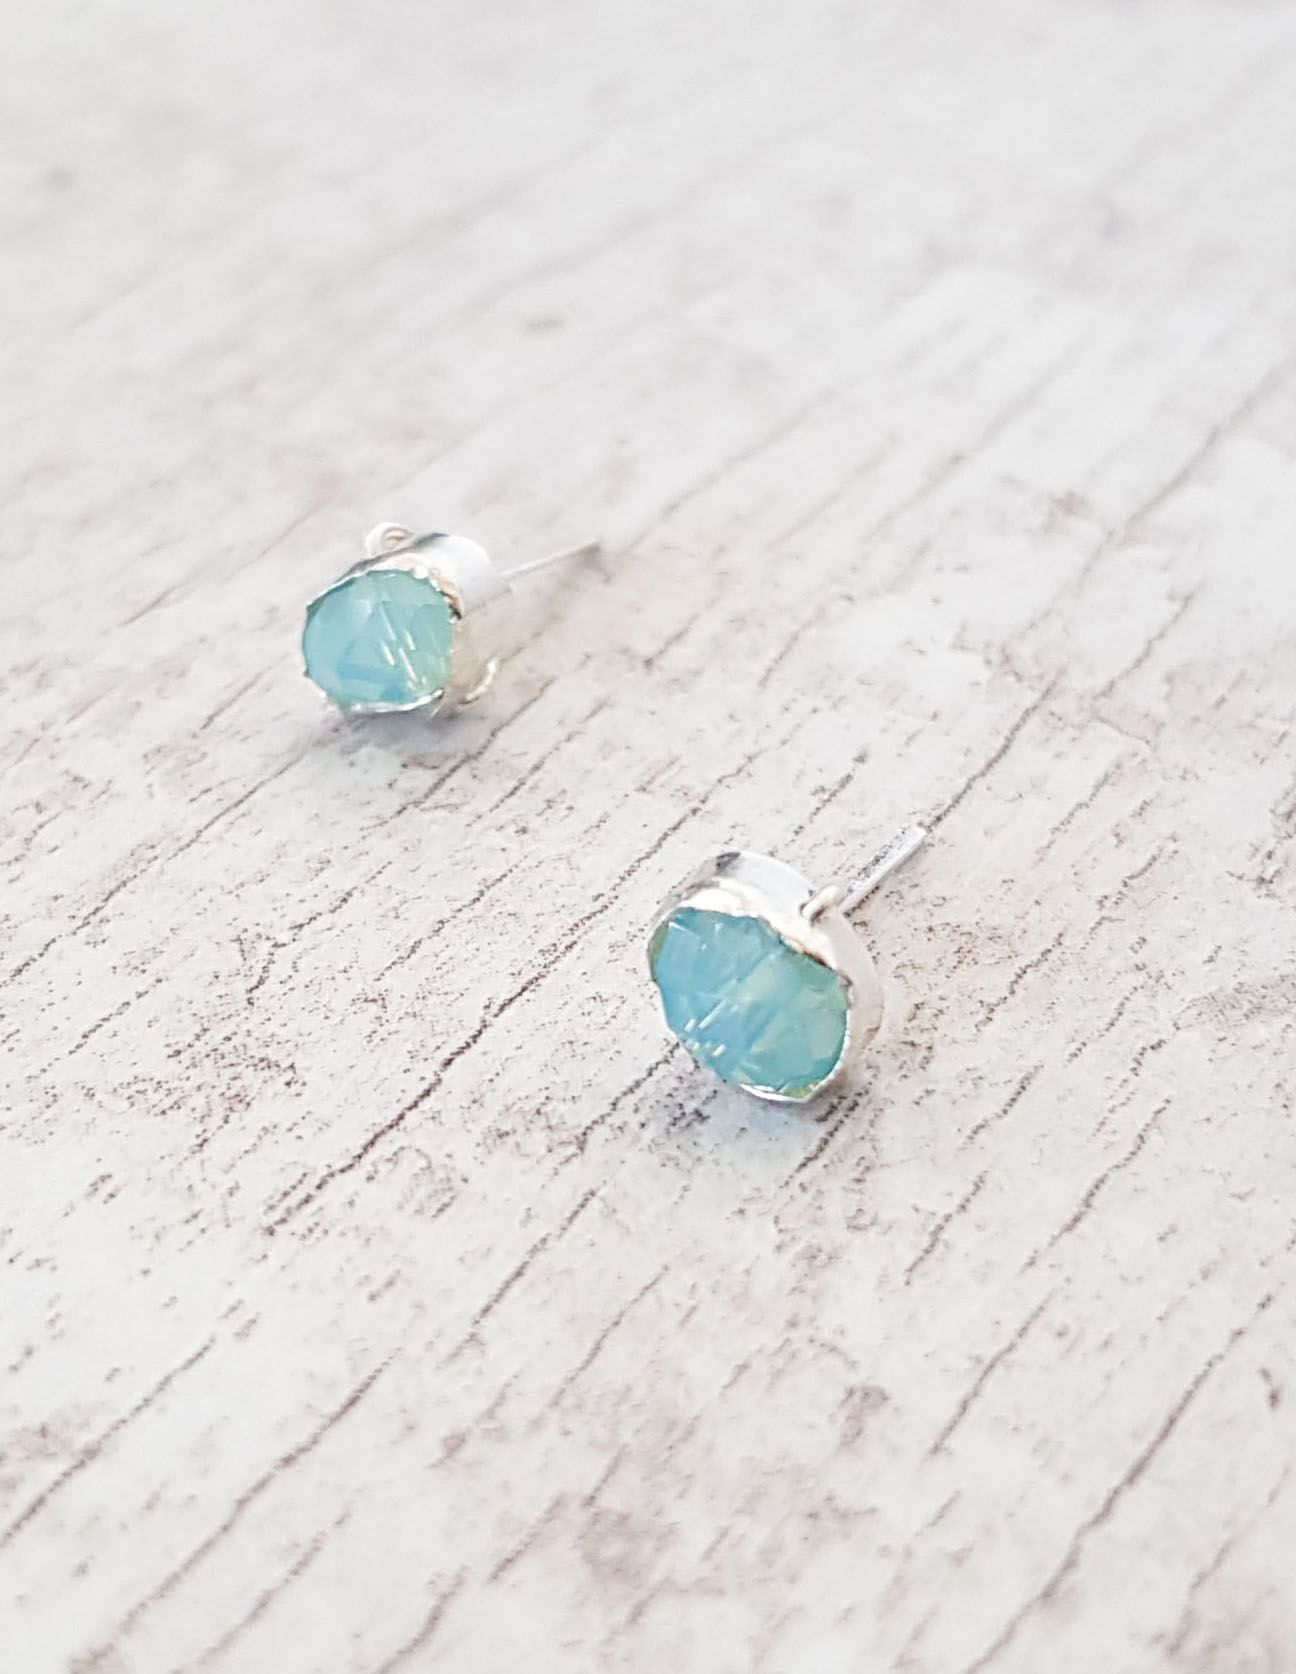 ee0491f1e Aqua Blue Studs, Chalcedony Earrings, Dainty Studs Earrings, Sterling  Silver 925, Rose Gold Filled Earrings, Aqua Blue Earrings, Blue Stone Studs